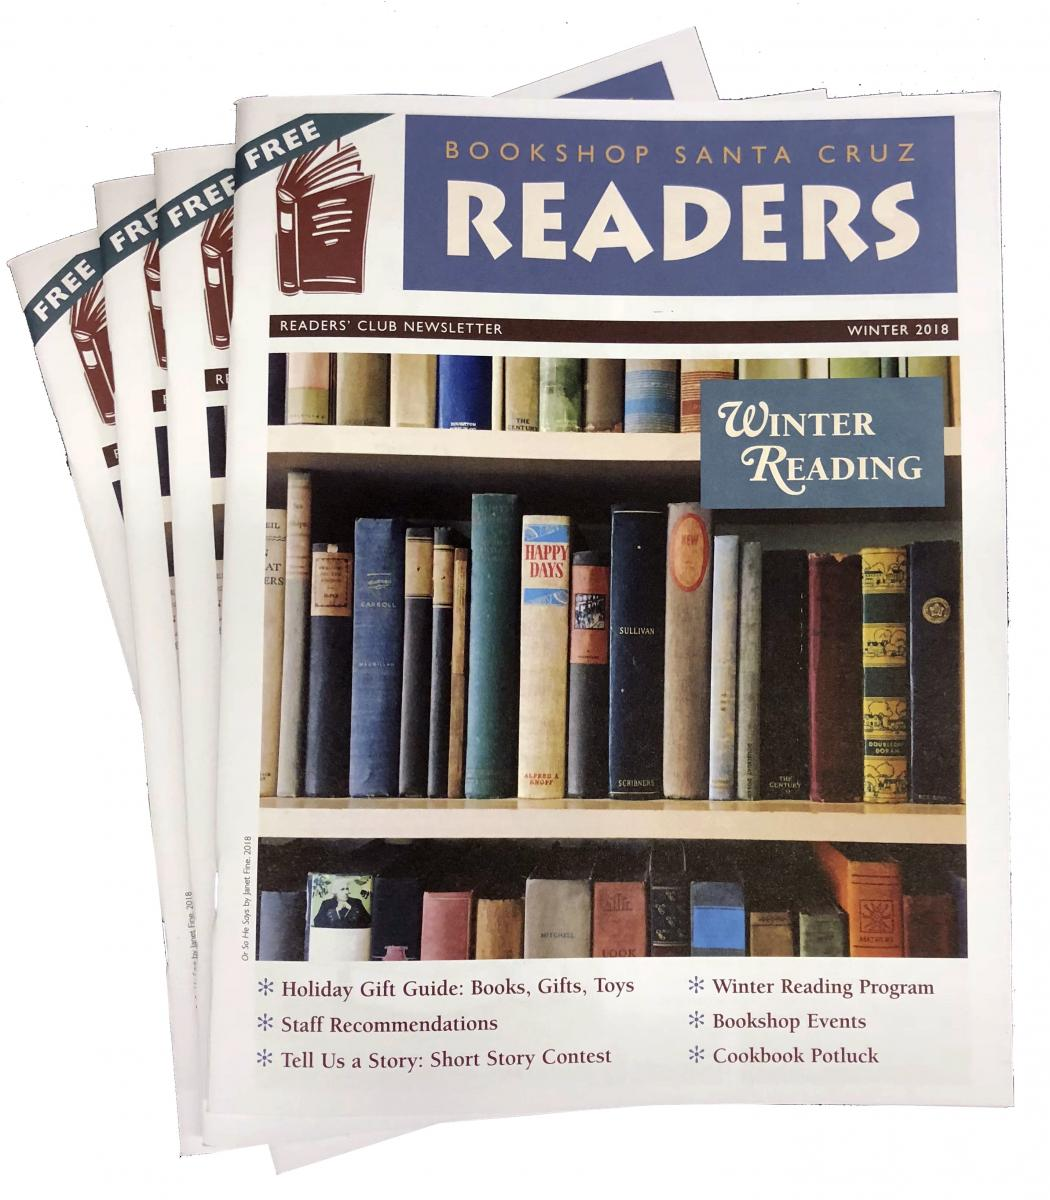 A fanned stack of the READERS 2018 Winter issue, with a cover image of shelves of vintage hardcover books.